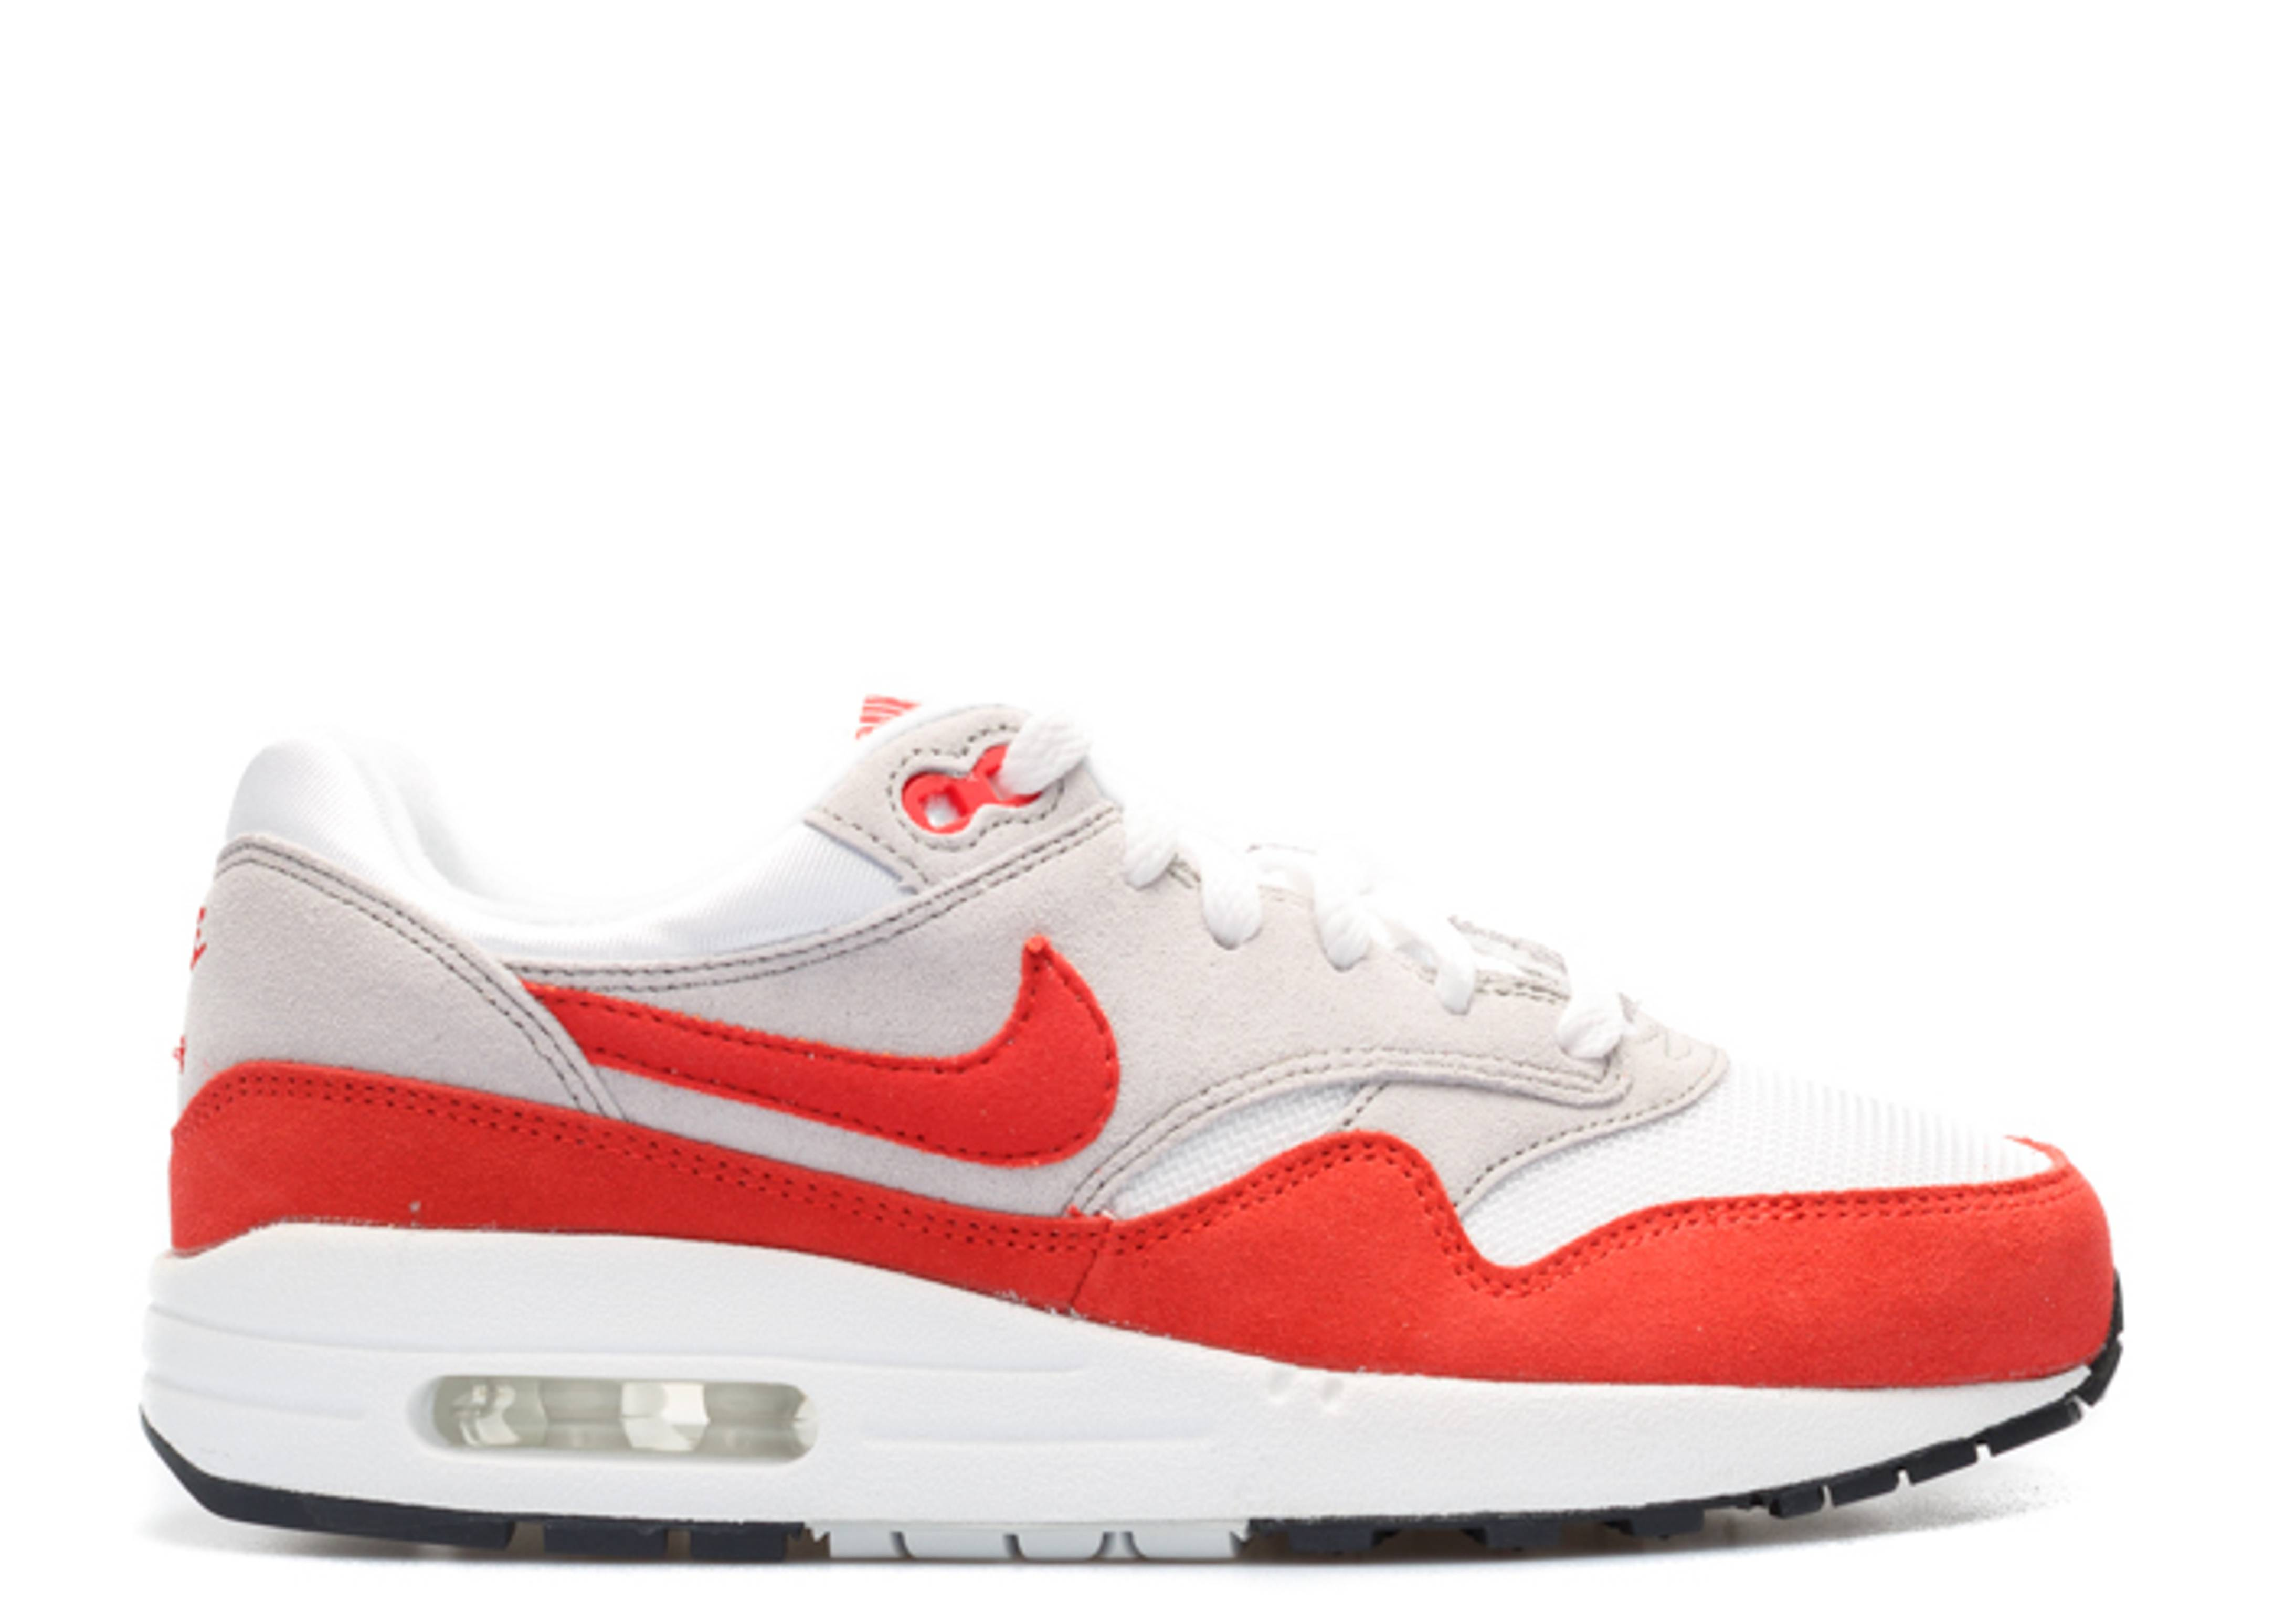 How to Clean Your Nike Air Max 1 Shoes